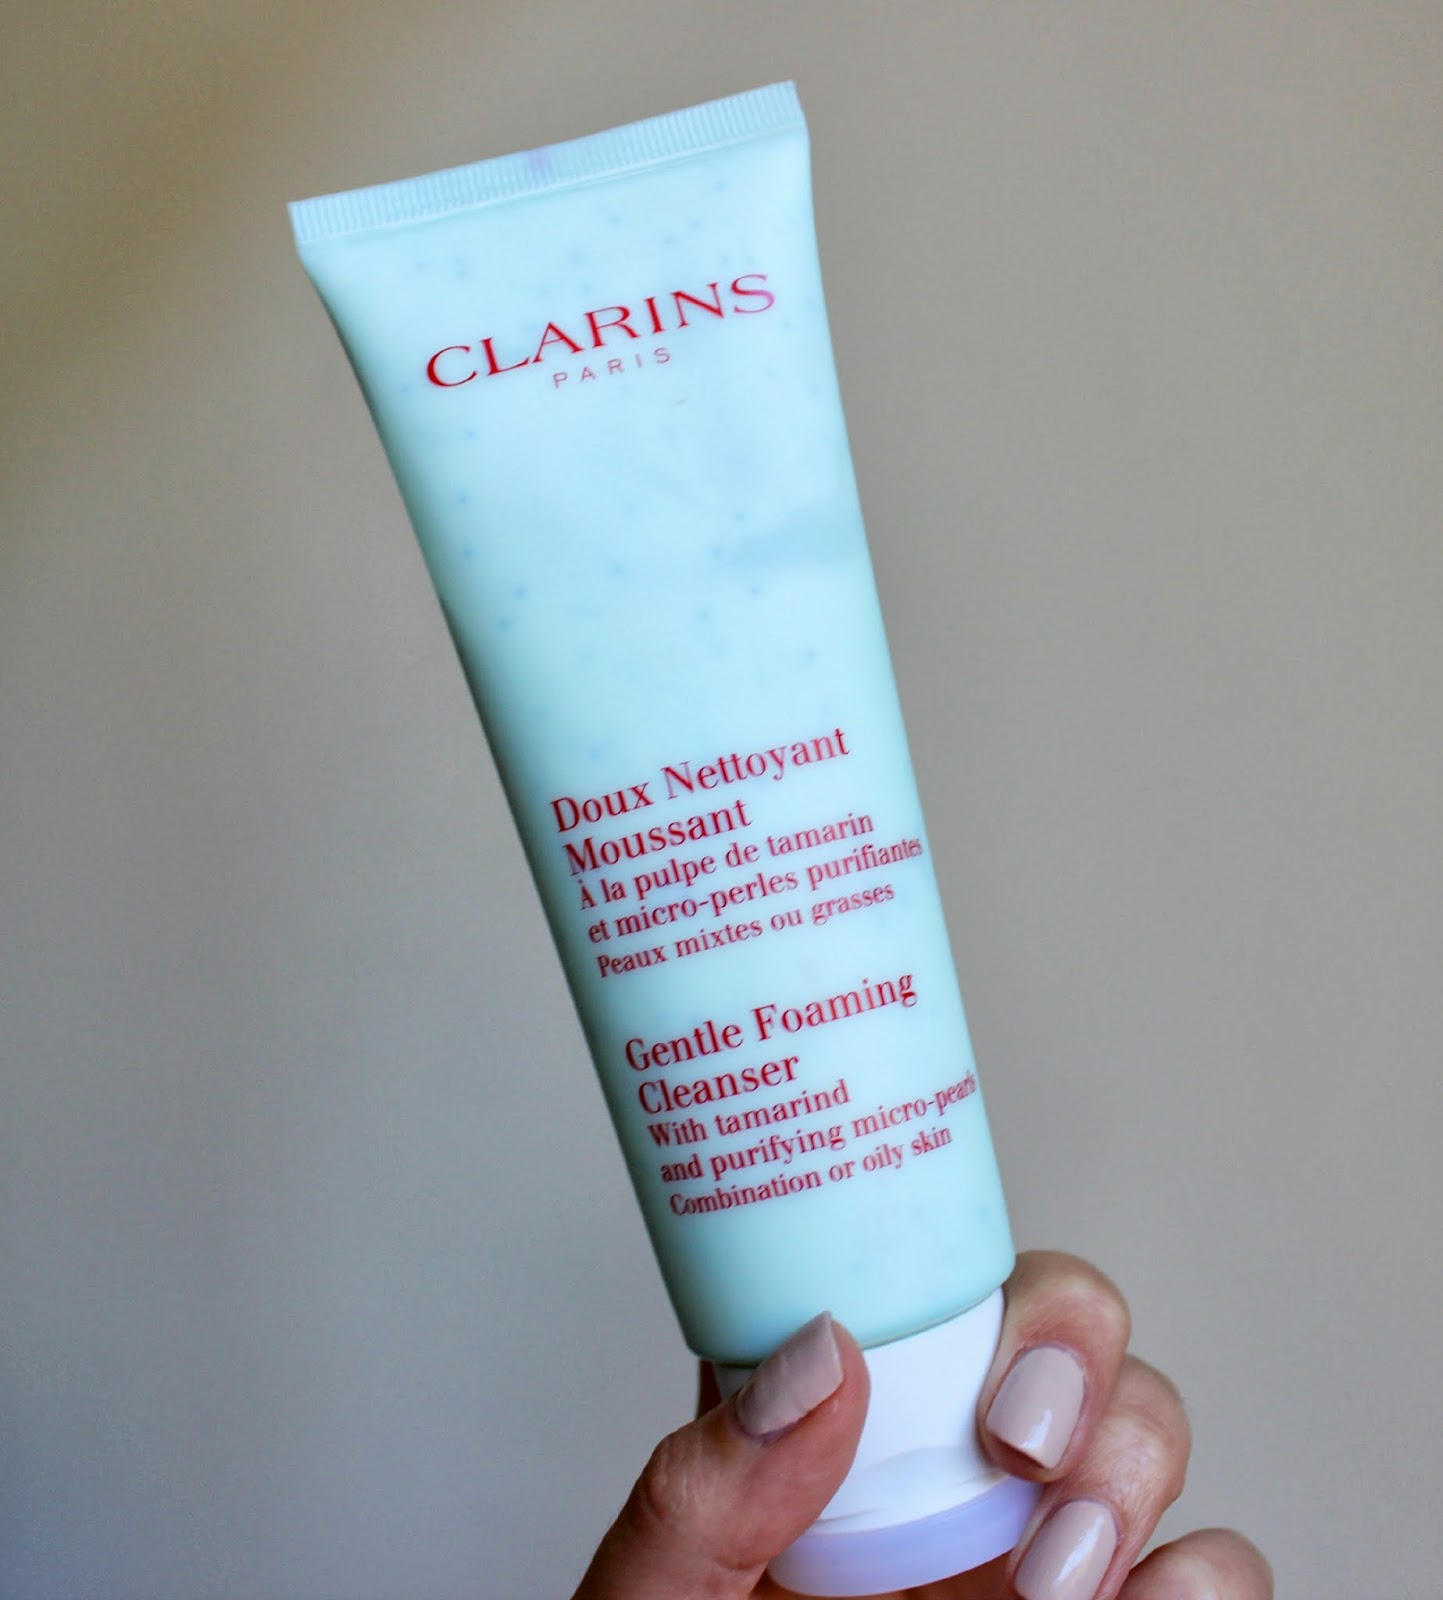 Gentle Foaming Cleanser-Combination or Oily Skin by Clarins #9